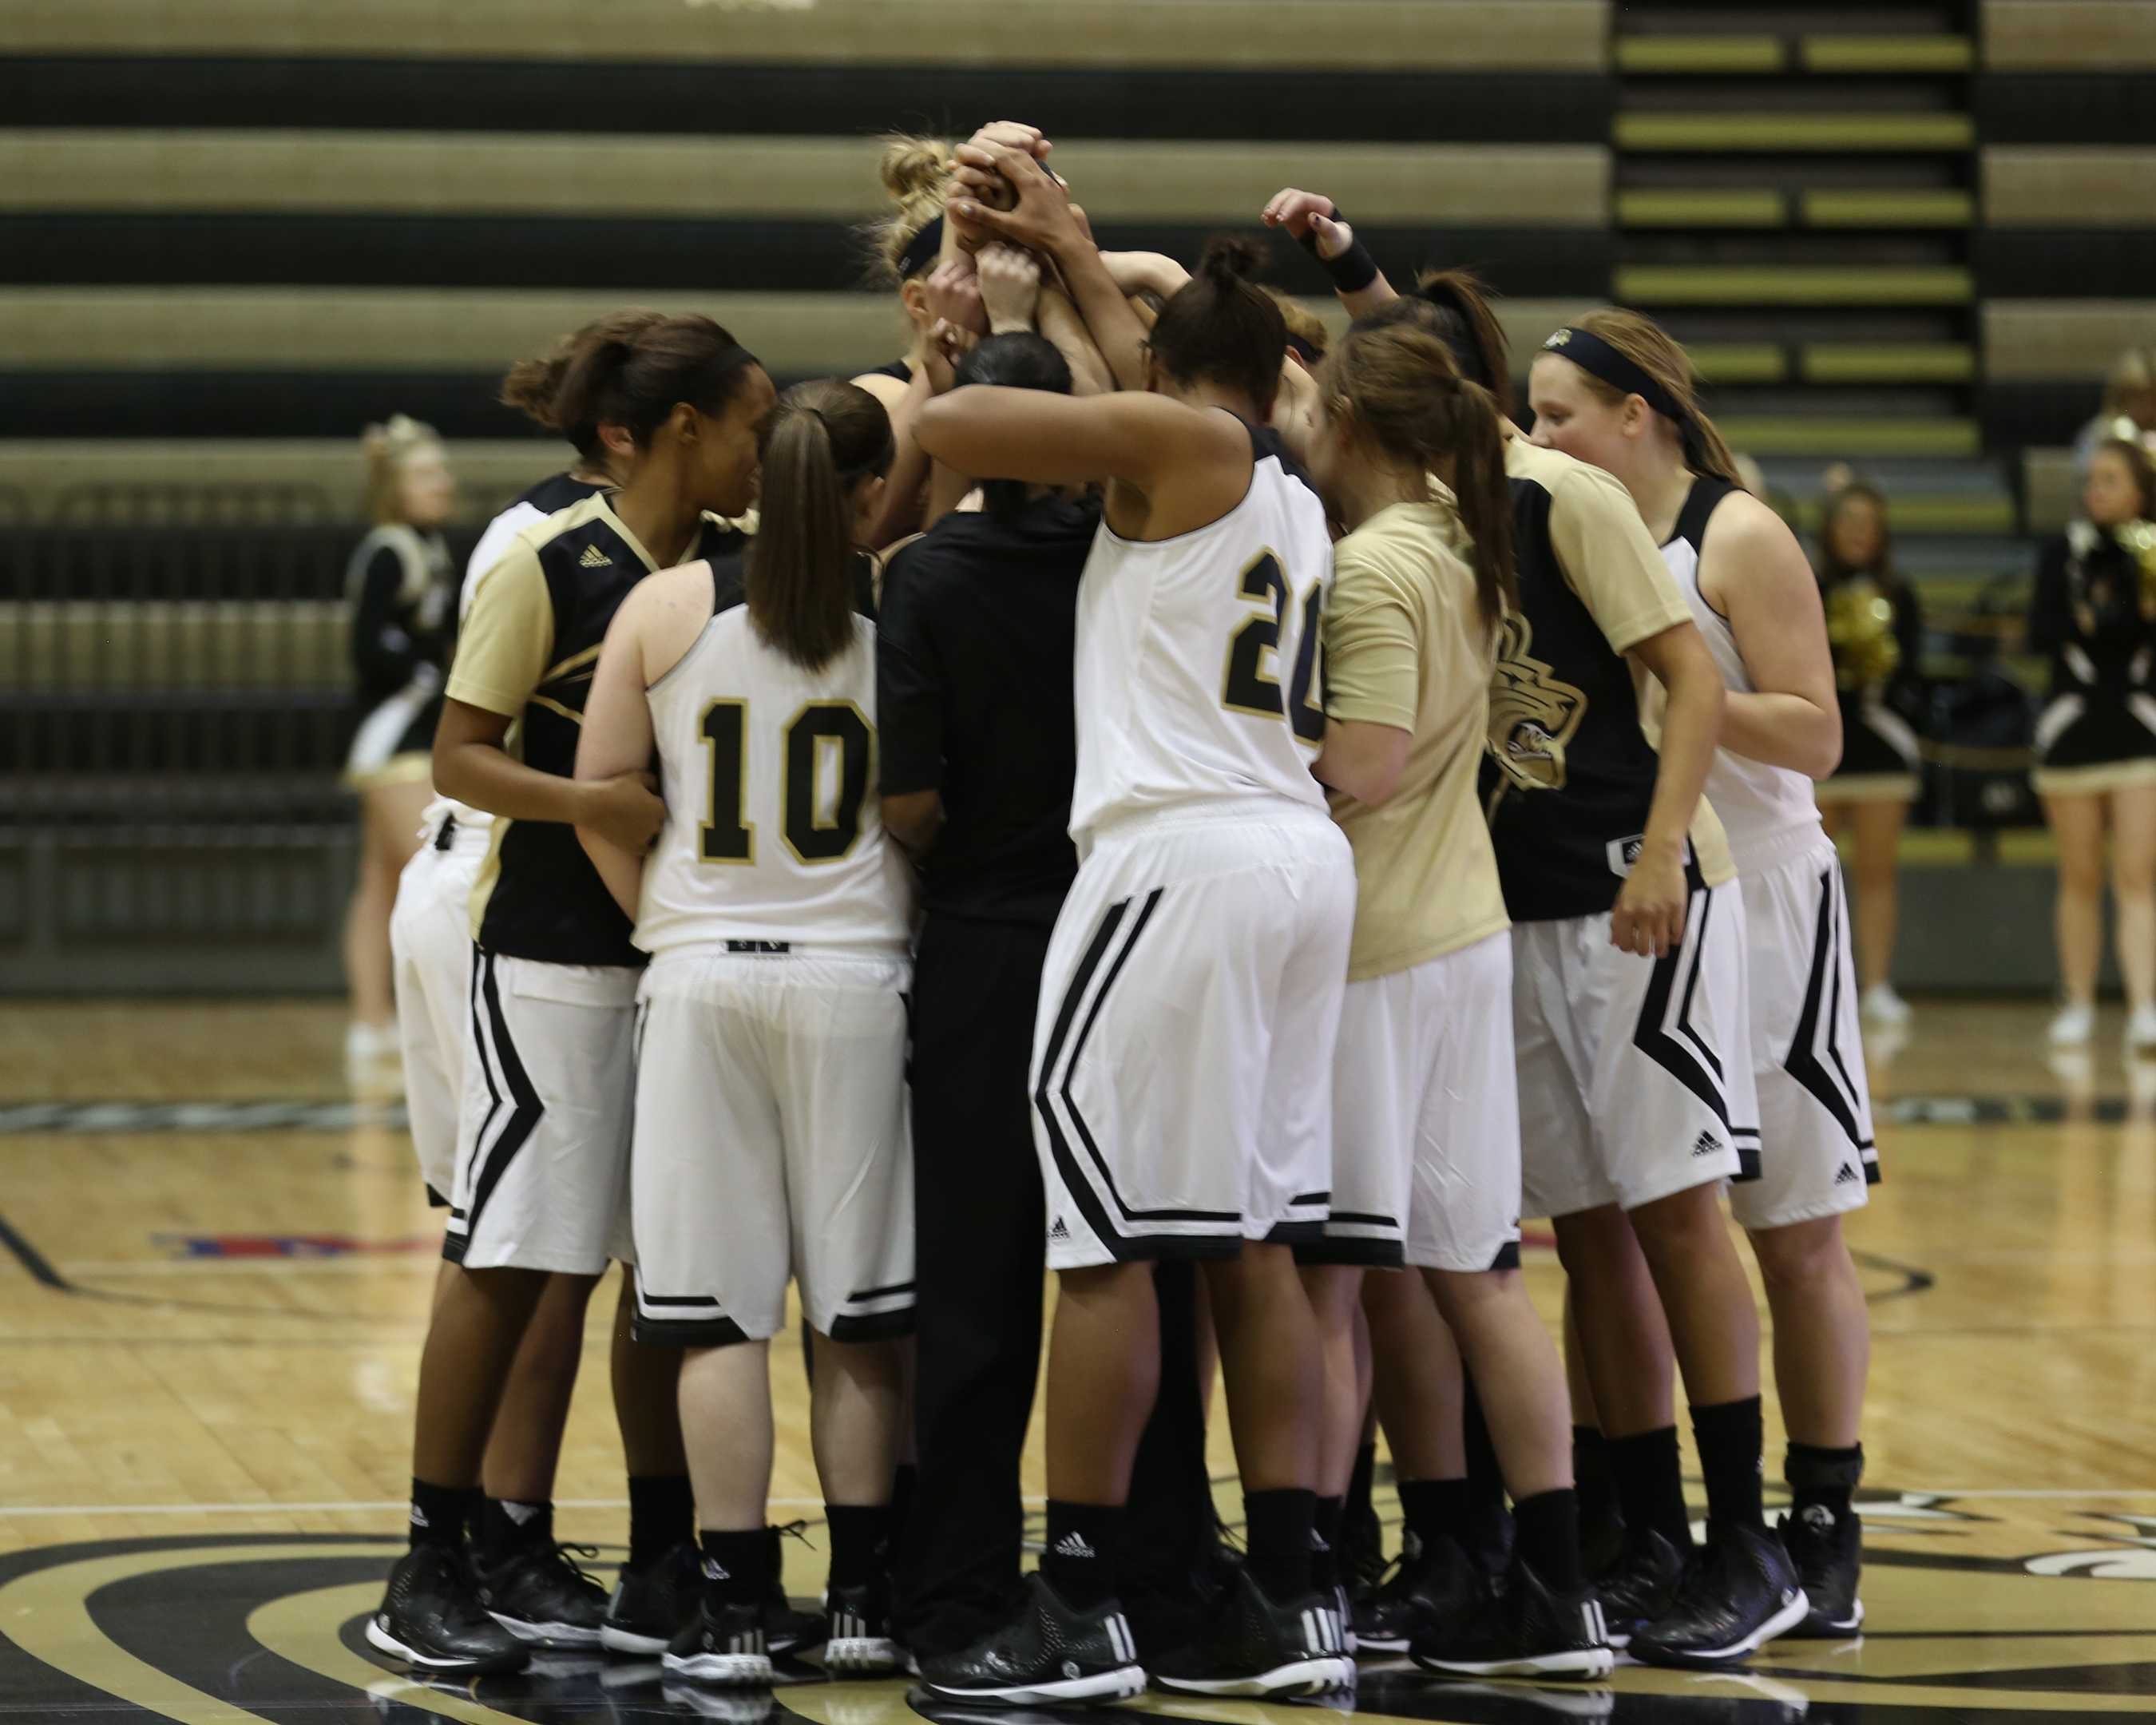 The women's basketball team huddles at center court during a game earlier this season.